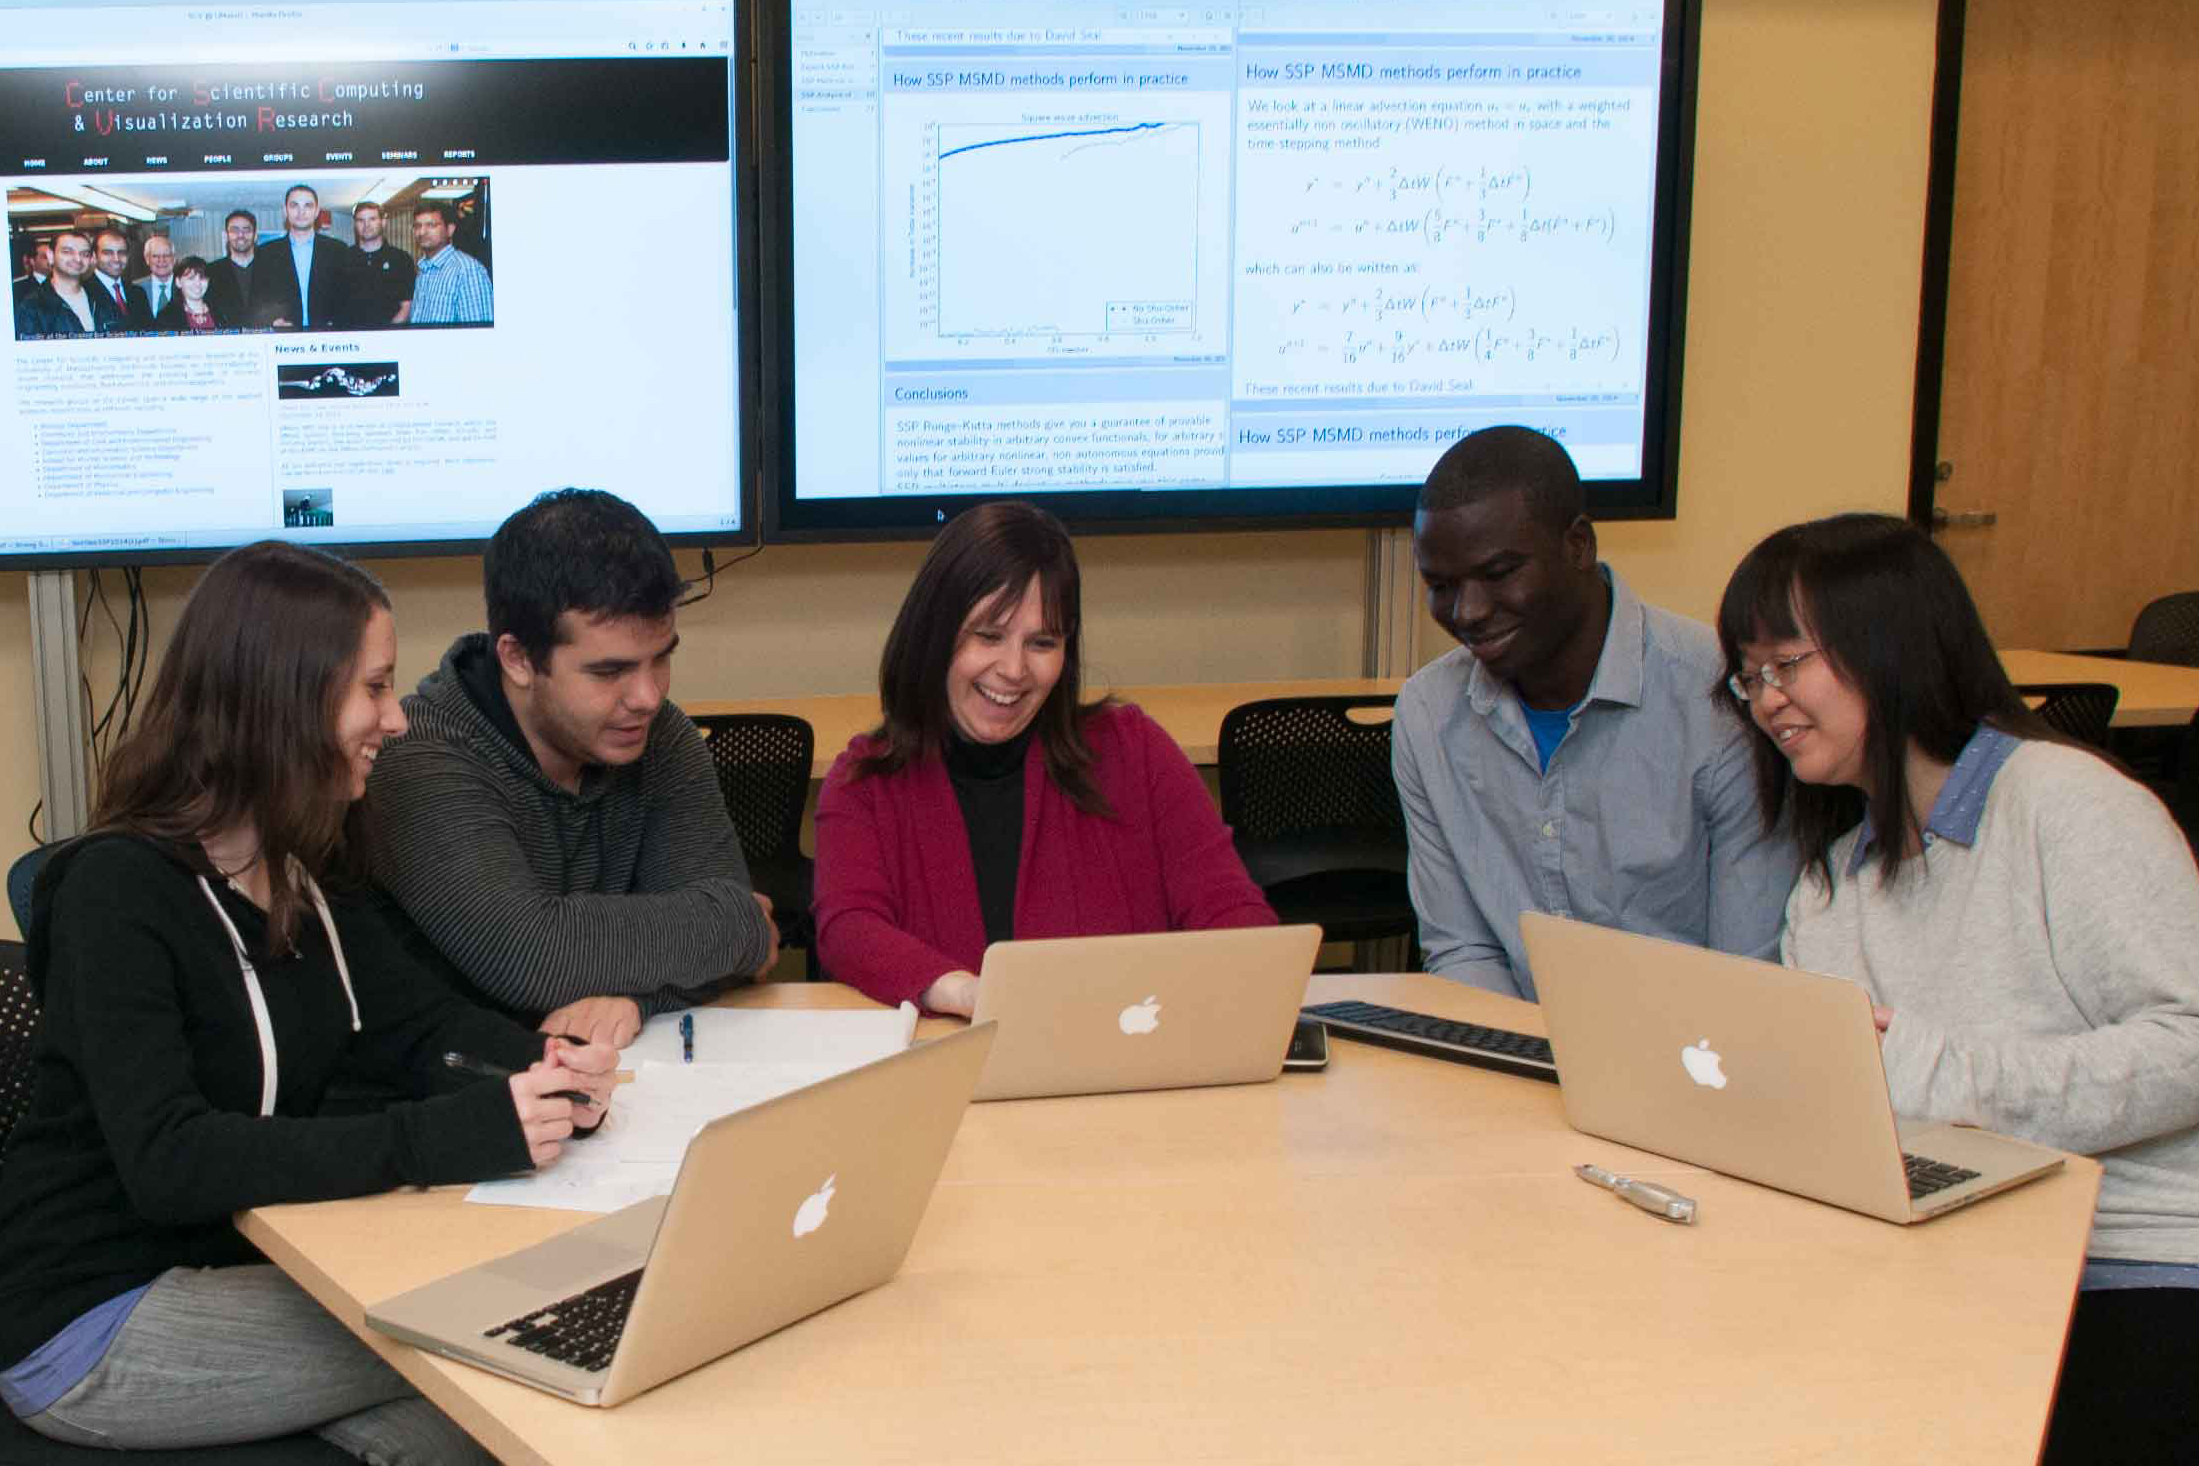 Sigal Gottlieb working with grad students at UMass Dartmouth's Center for Scientific Computing and Visualization Research (CSCVR).